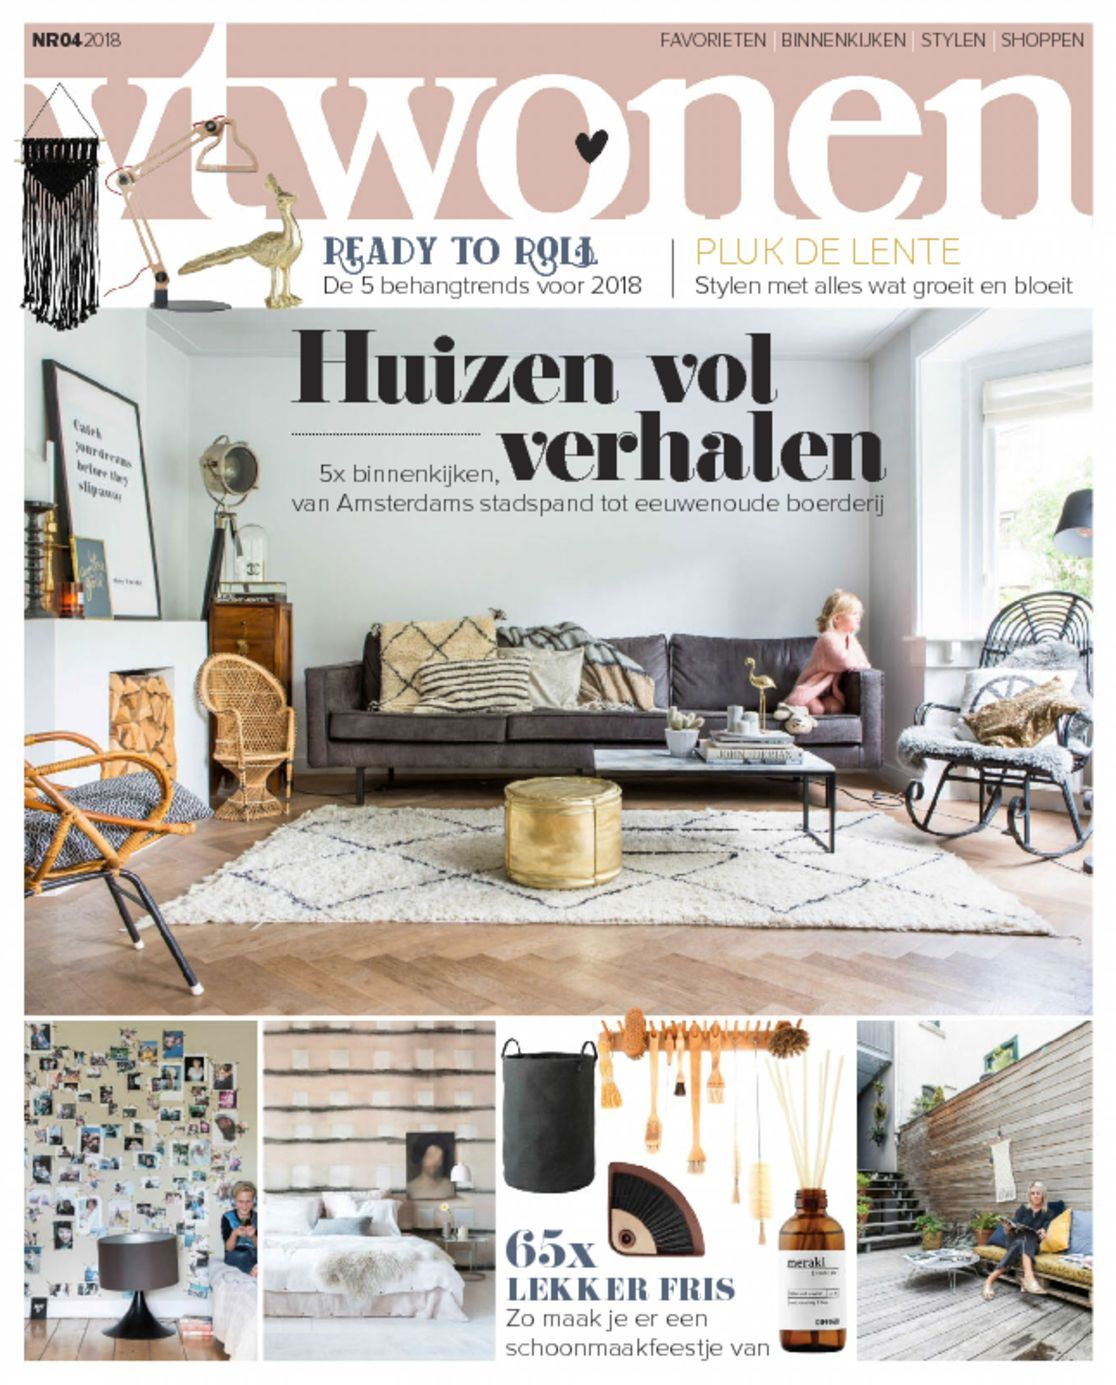 Woonstijlen 2017 Vtwonen Magazine Subscription Digital